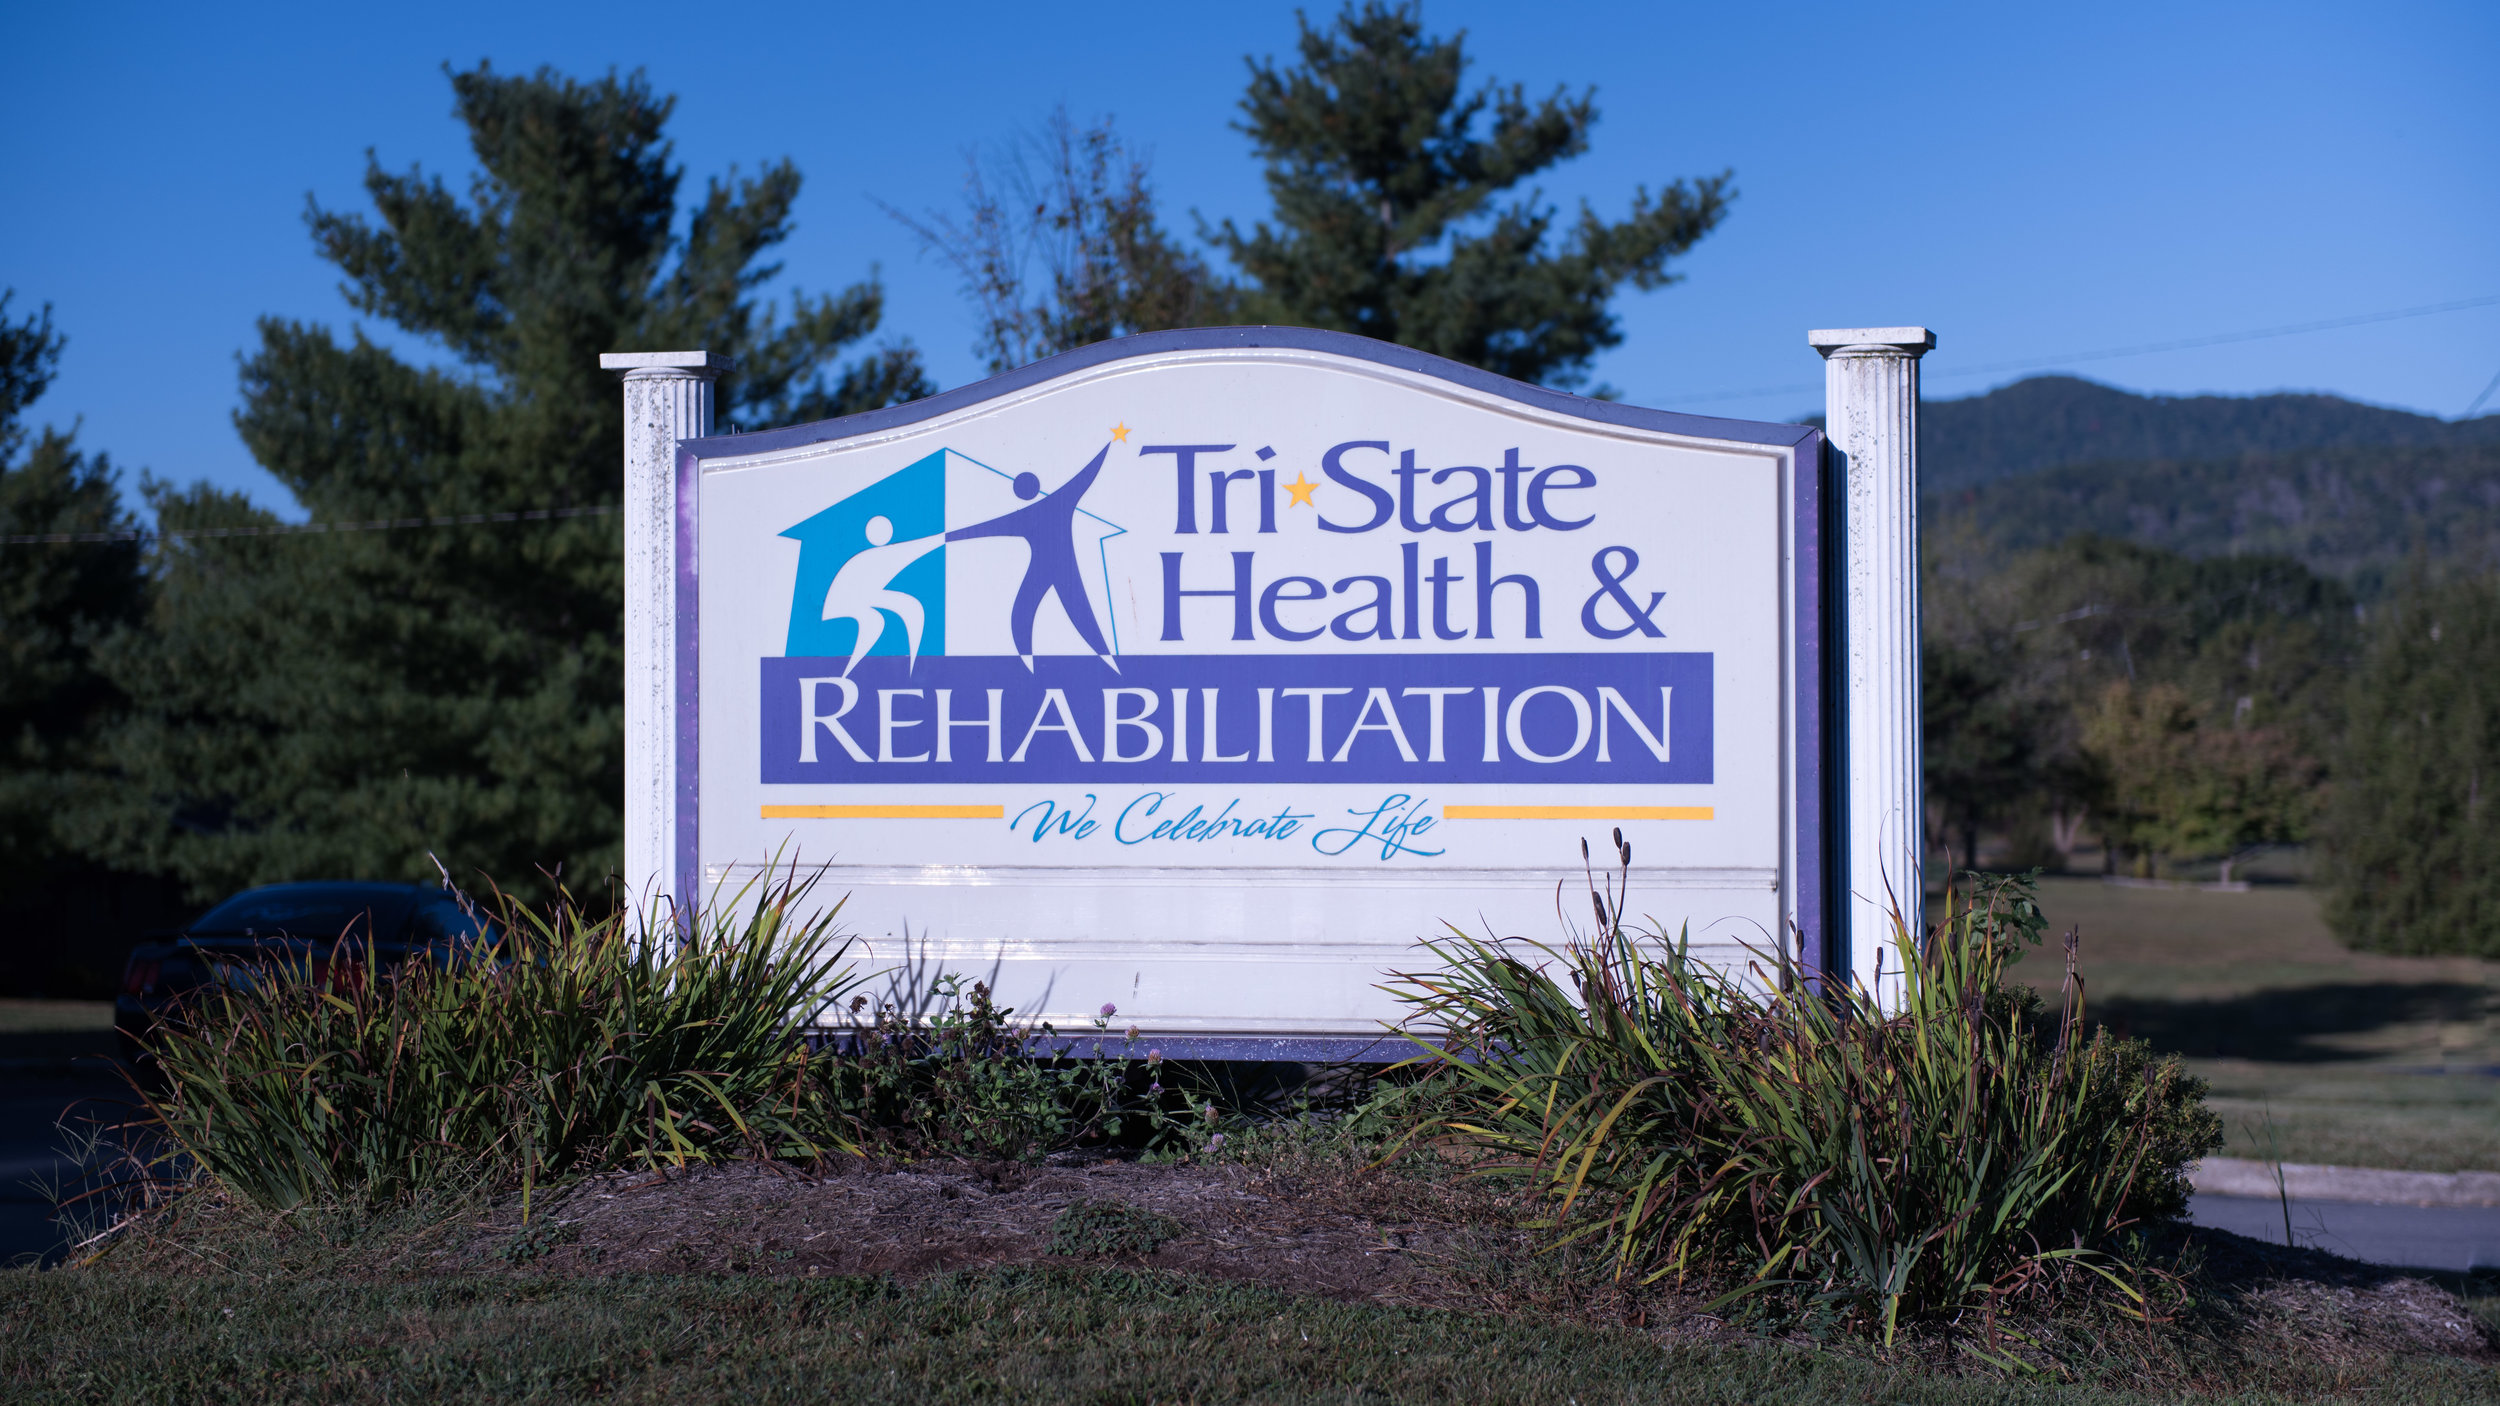 At Tri State Health and Rehabilitation center, we take care to provide high quality, personalized service, to help meet the unique needs of each of our residents.